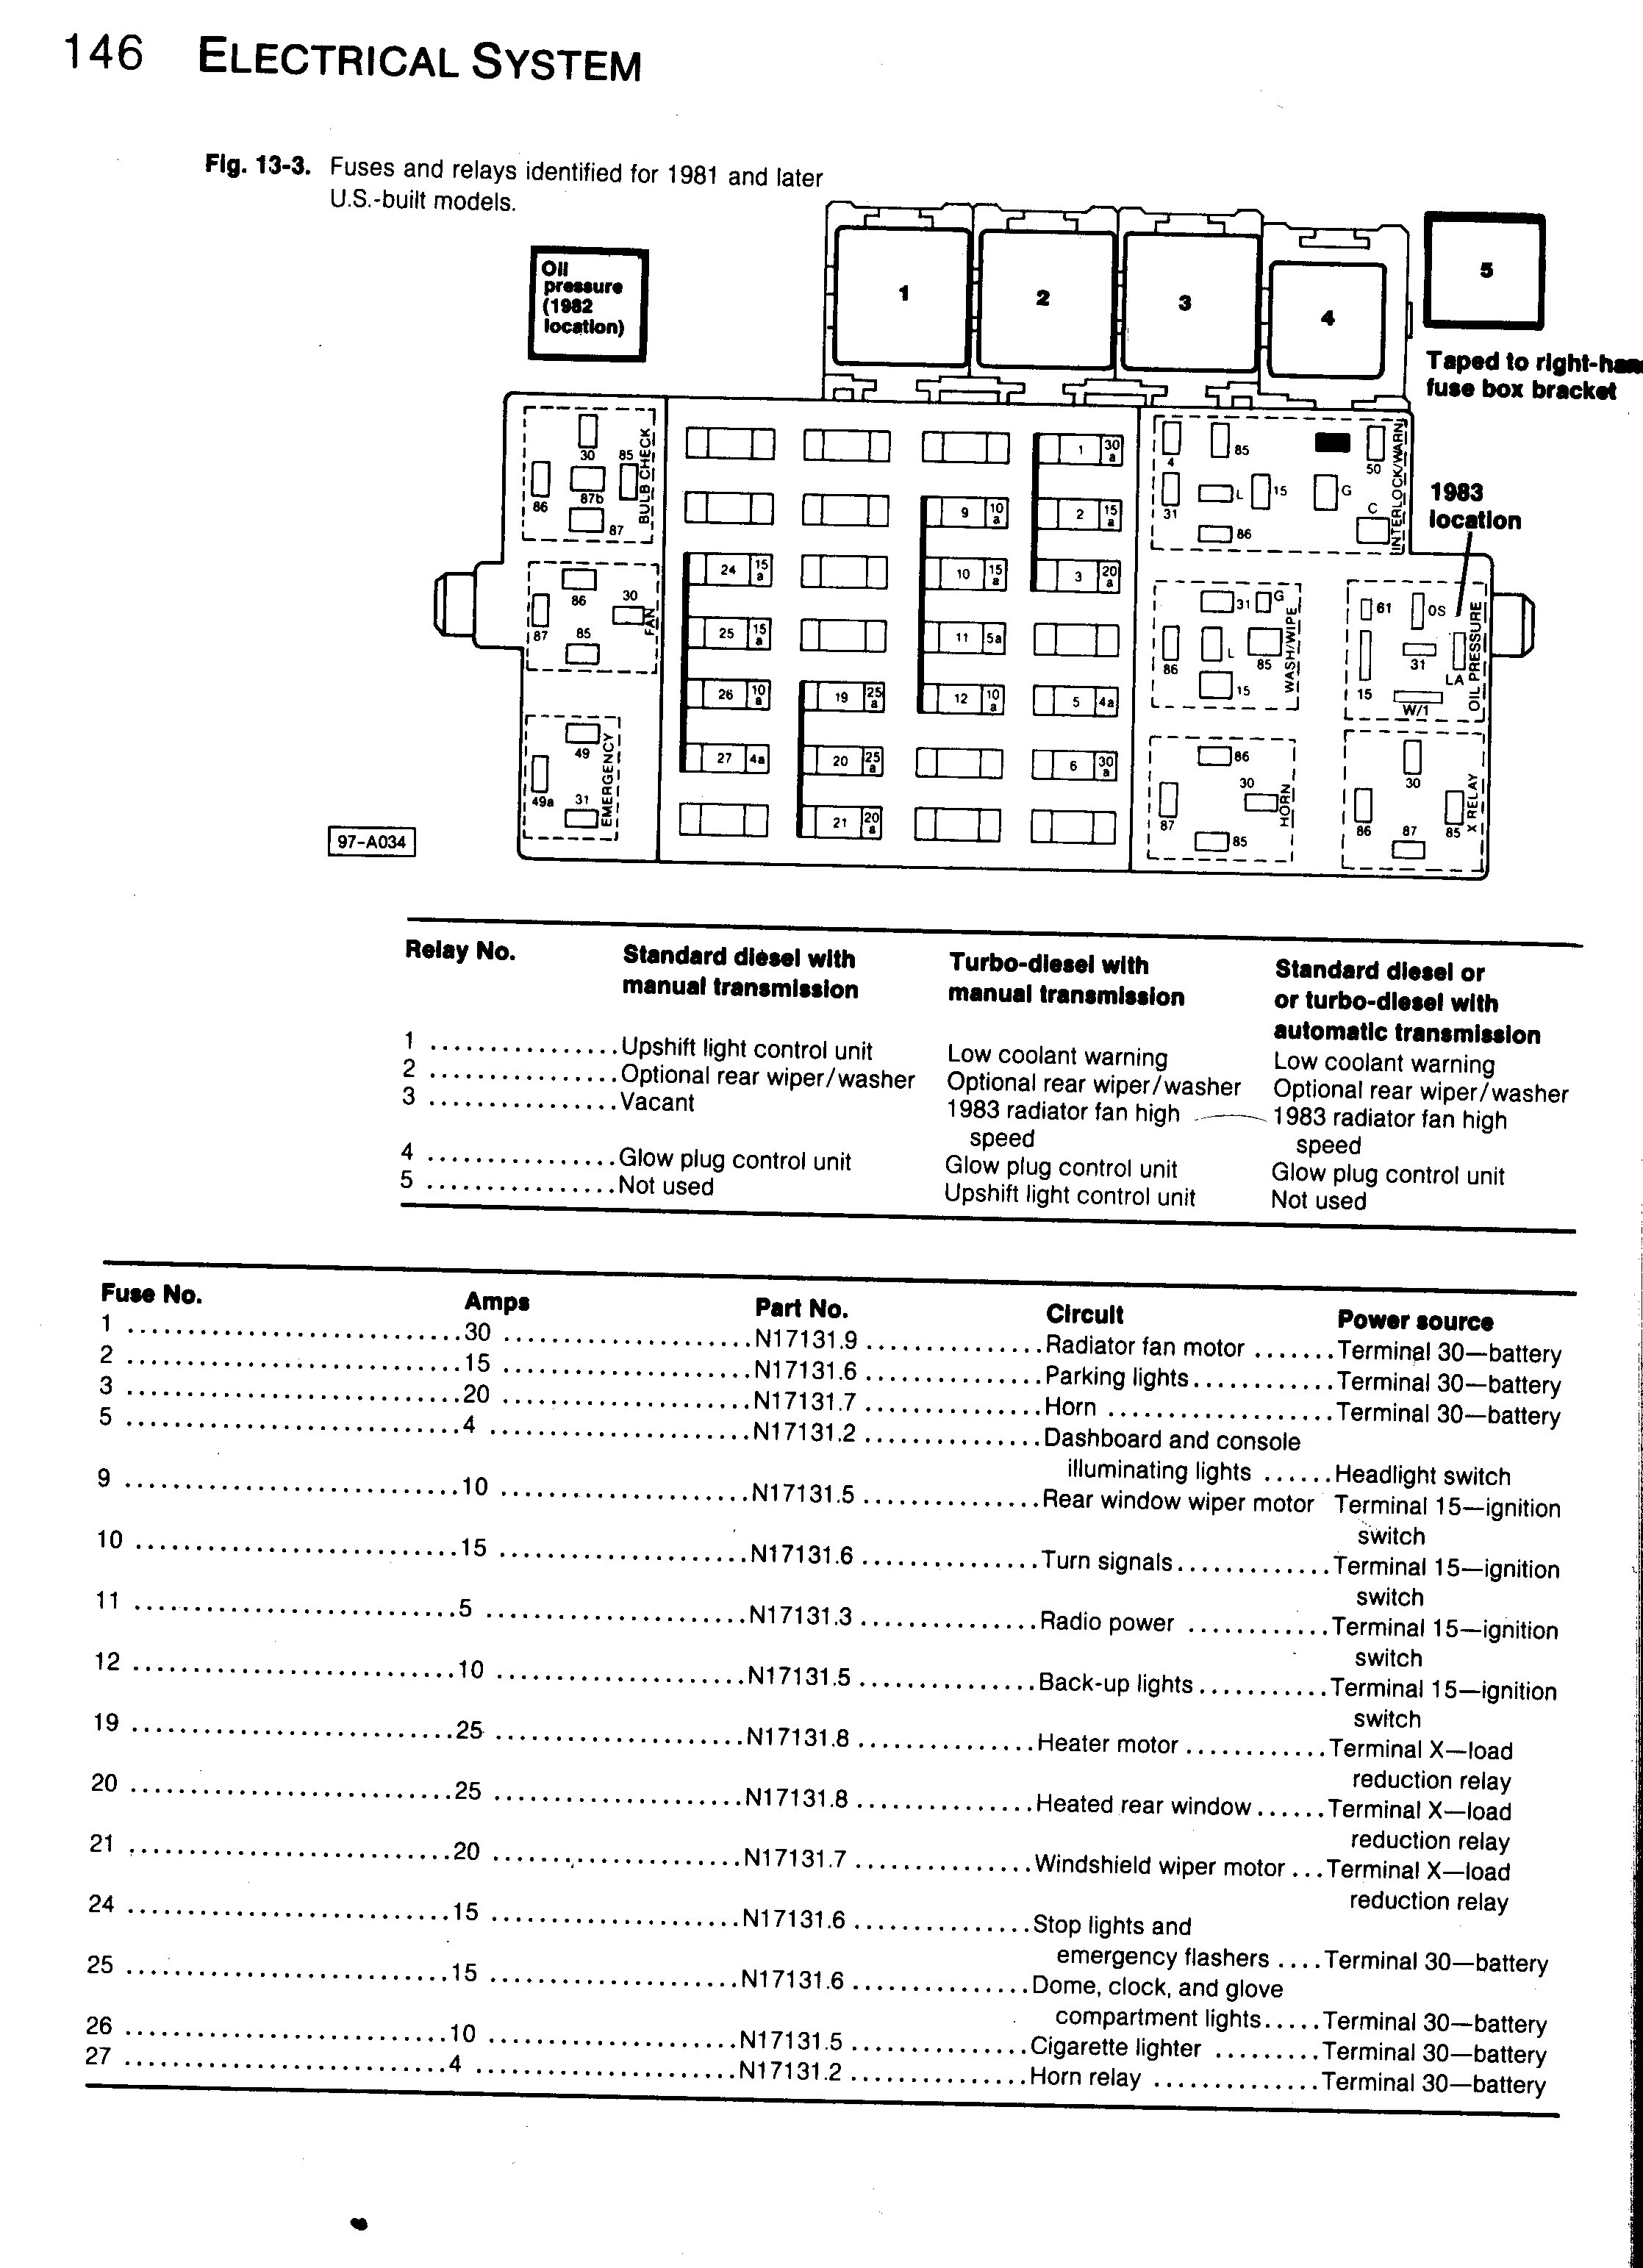 96 Ford E350 Fuse Box Diagram Wiring Library 2005 Dodge Stratus Location 2013 Detailed Schematics Rh Jppastryarts Com Jeep Layout